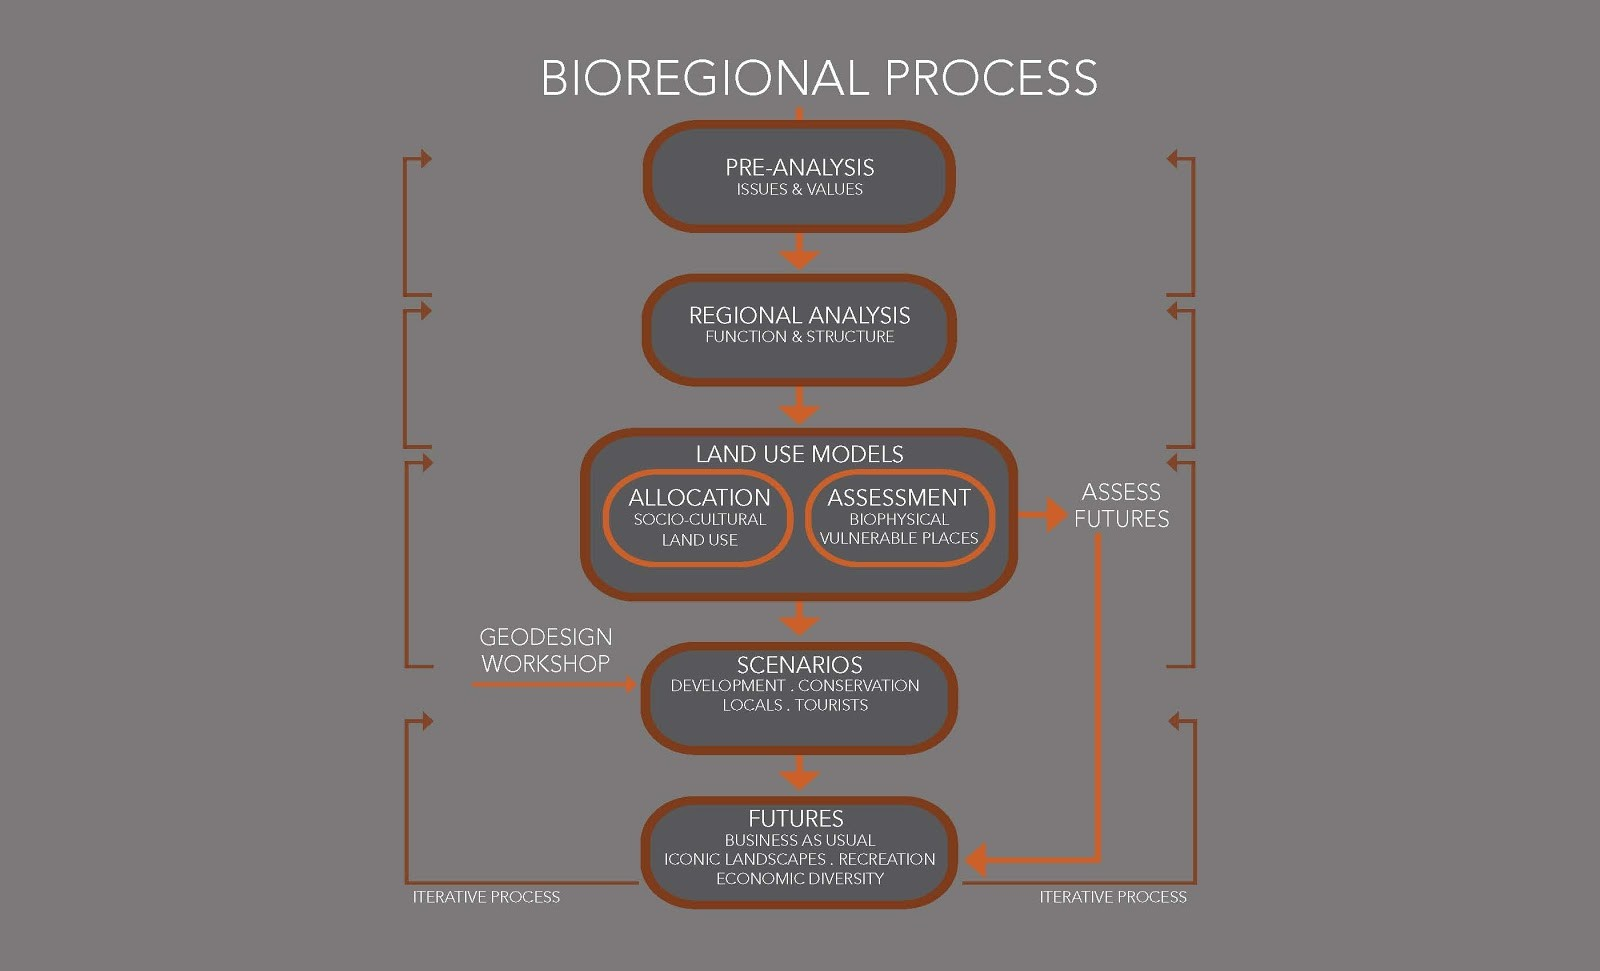 The bioregional process considers how natural and socio-economic systems connect and influence each other. This encompasses all systems, integrating planning for communities and their encompassing landscapes.